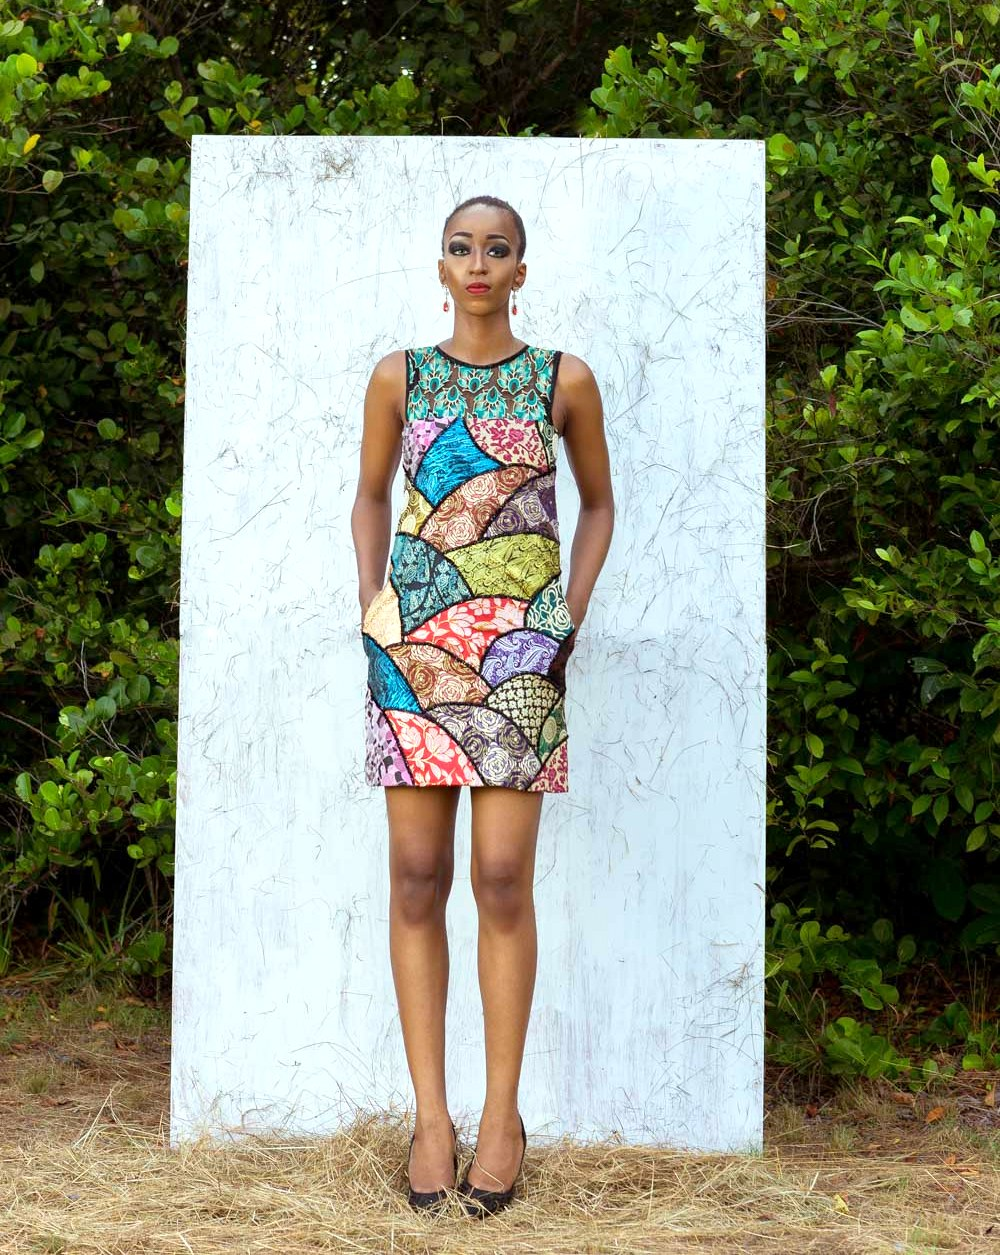 Nigerian fashion blogger and model Cassie Daves for Moofa designs